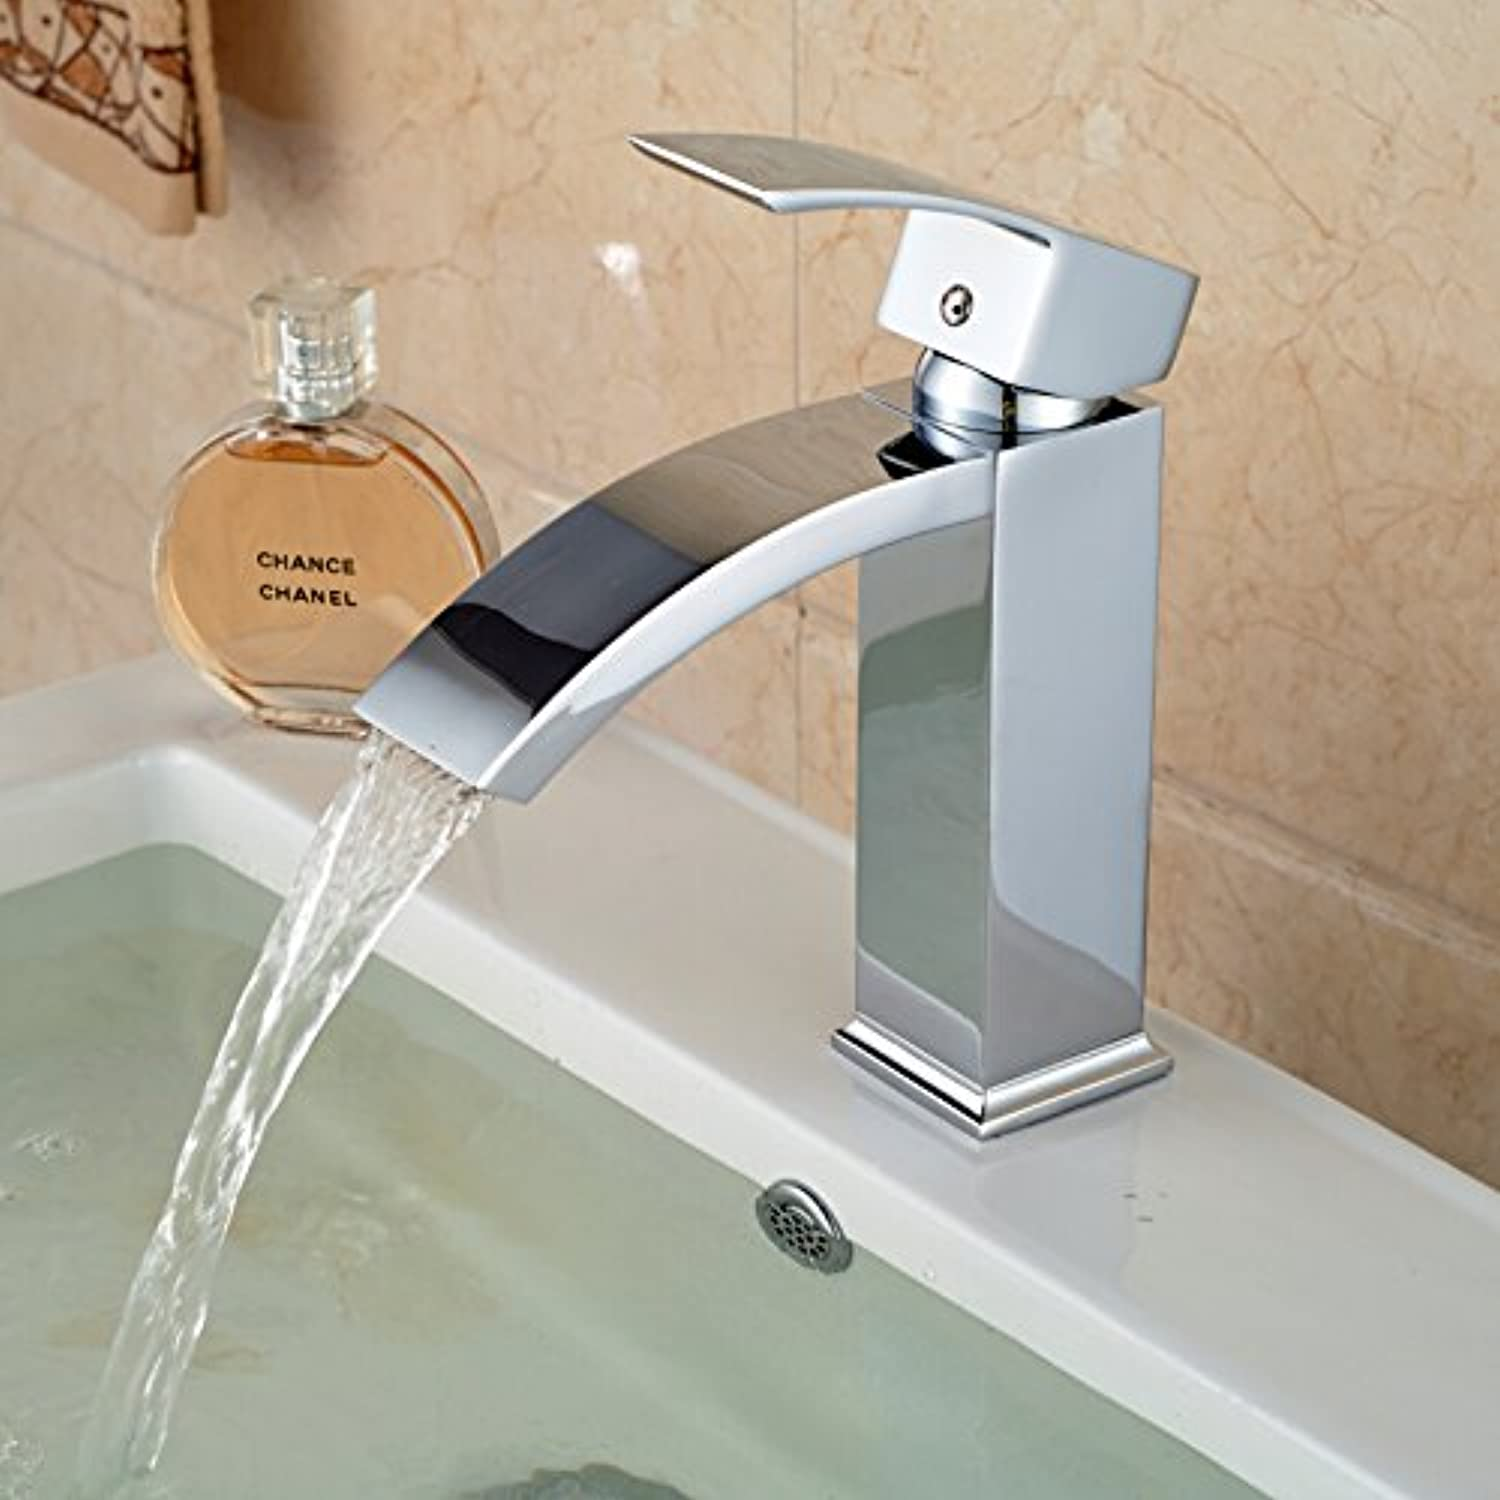 Chrome-Plated Polished Solid Brass Bathroom Single Handle Faucet